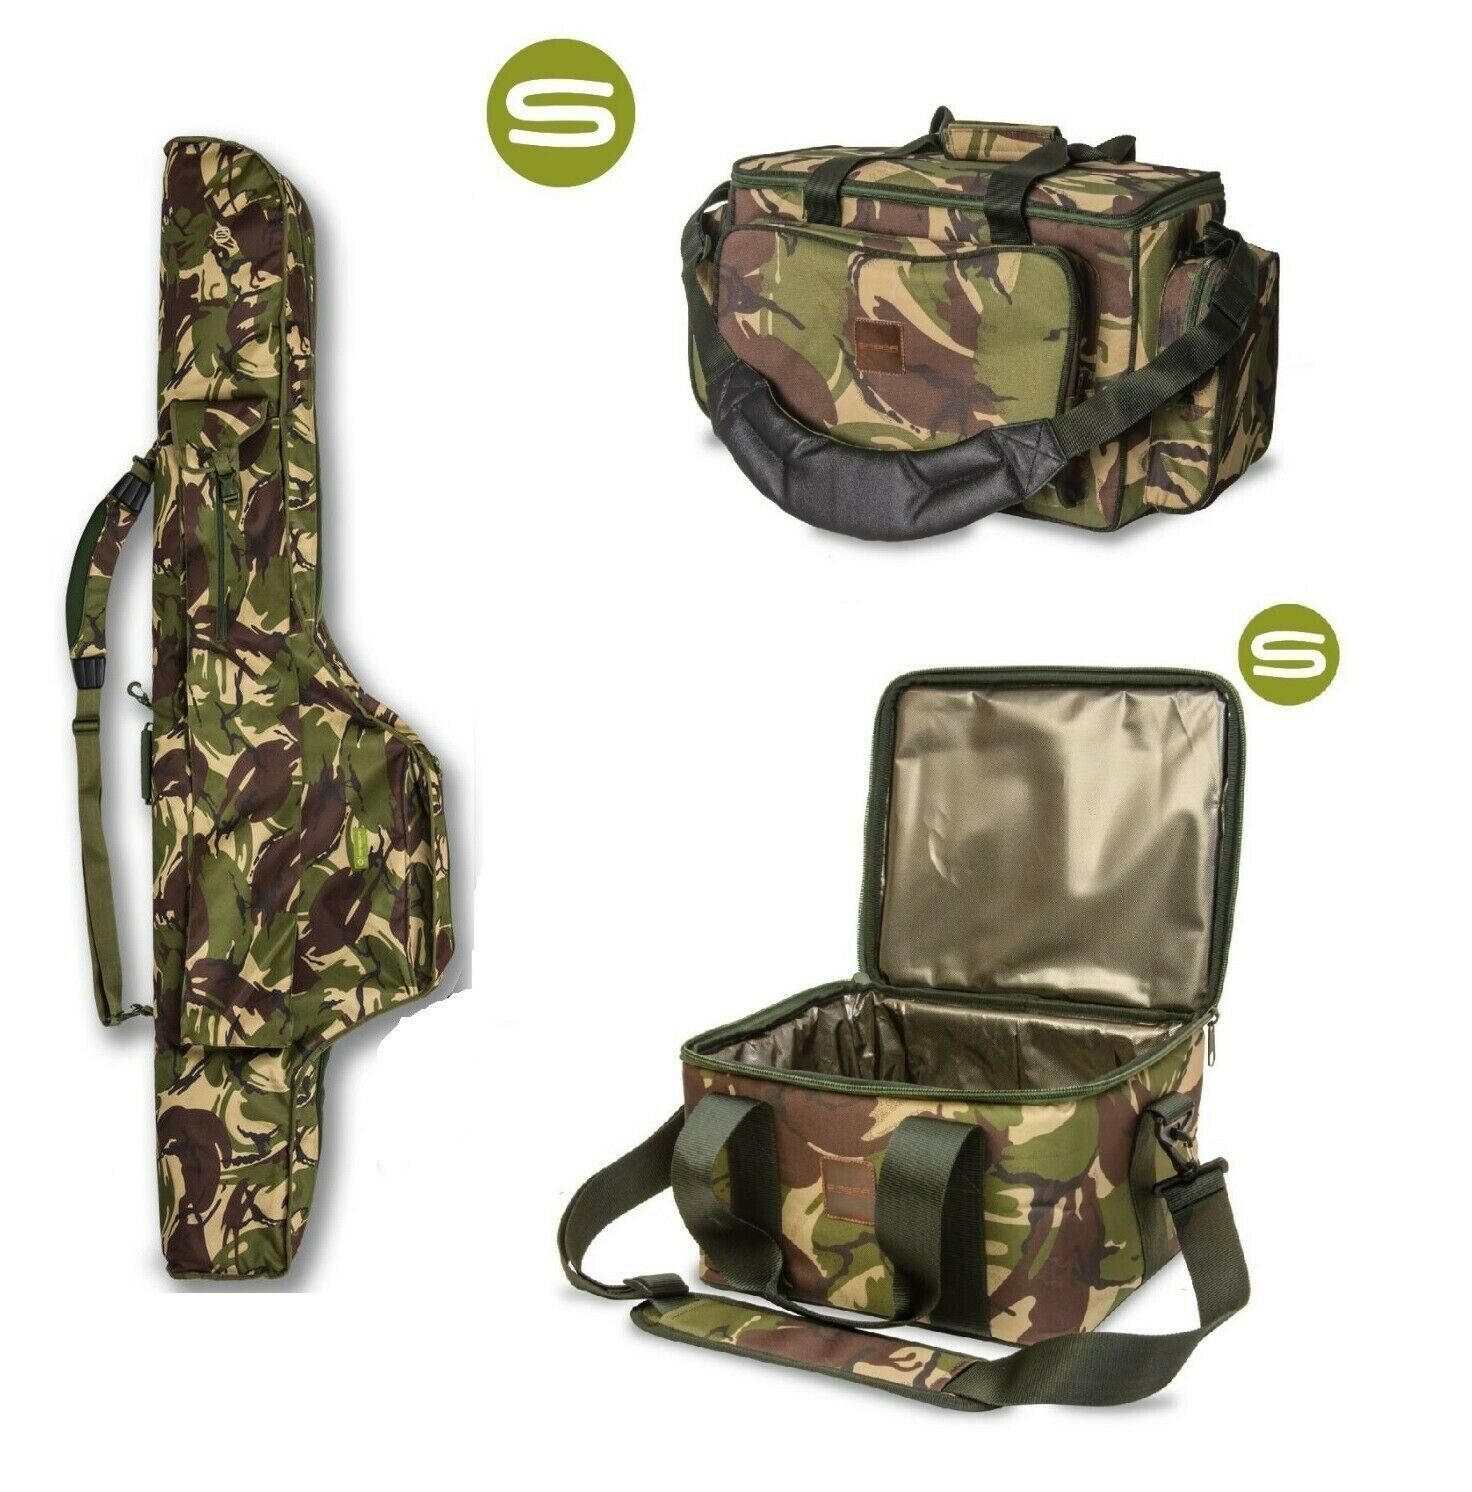 Saber DPM Camo 12ft 5 Rod Sleeve+ Saber DPM Carryall+ Saber DPM Camo Cooler Bag